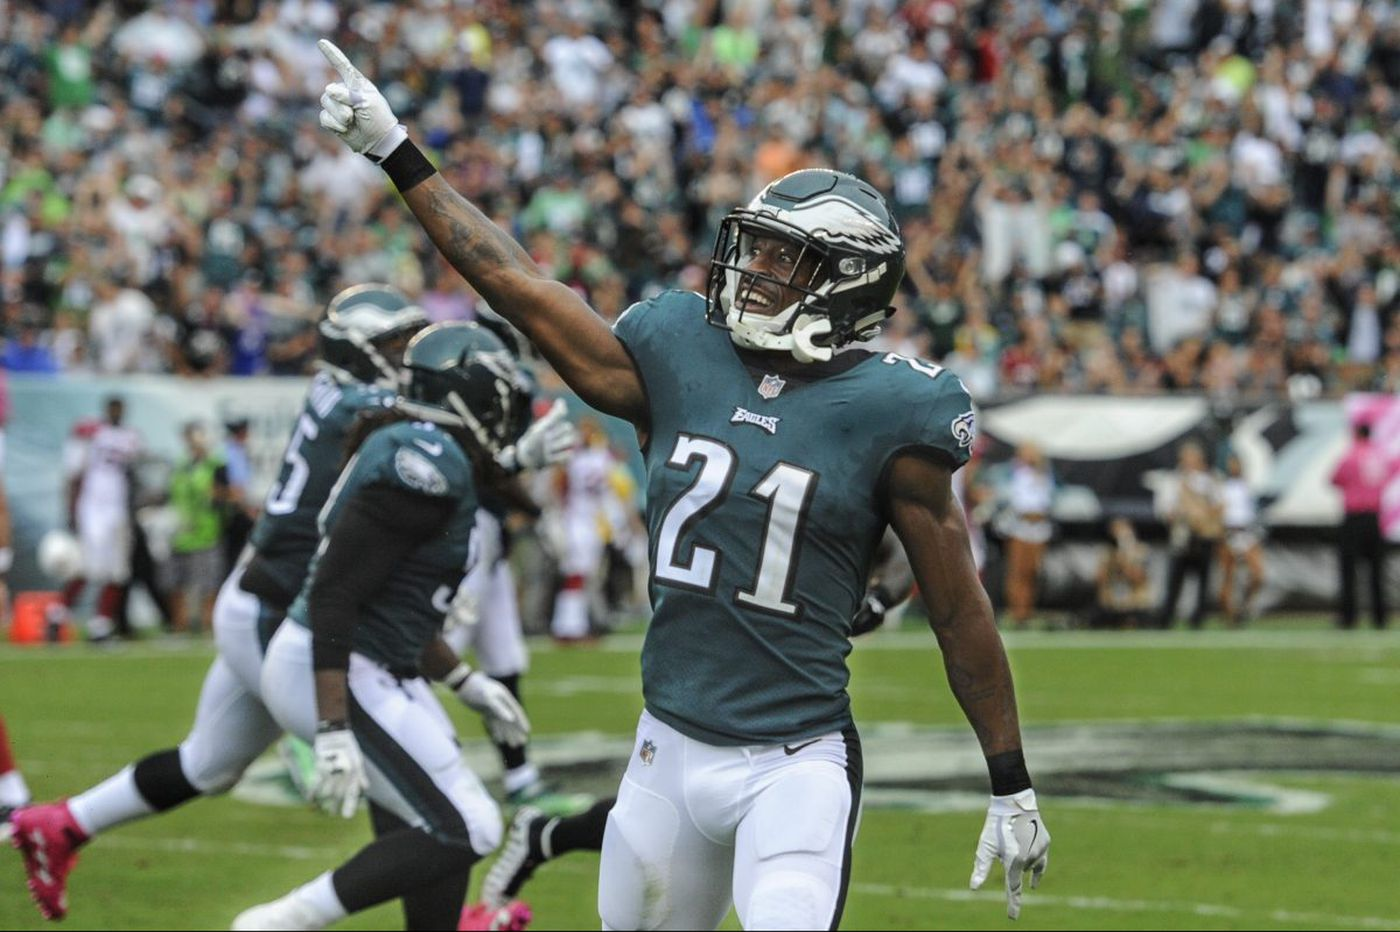 Patrick Robinson has been a great find for Eagles, now that he's found his confidence | Mike Sielski